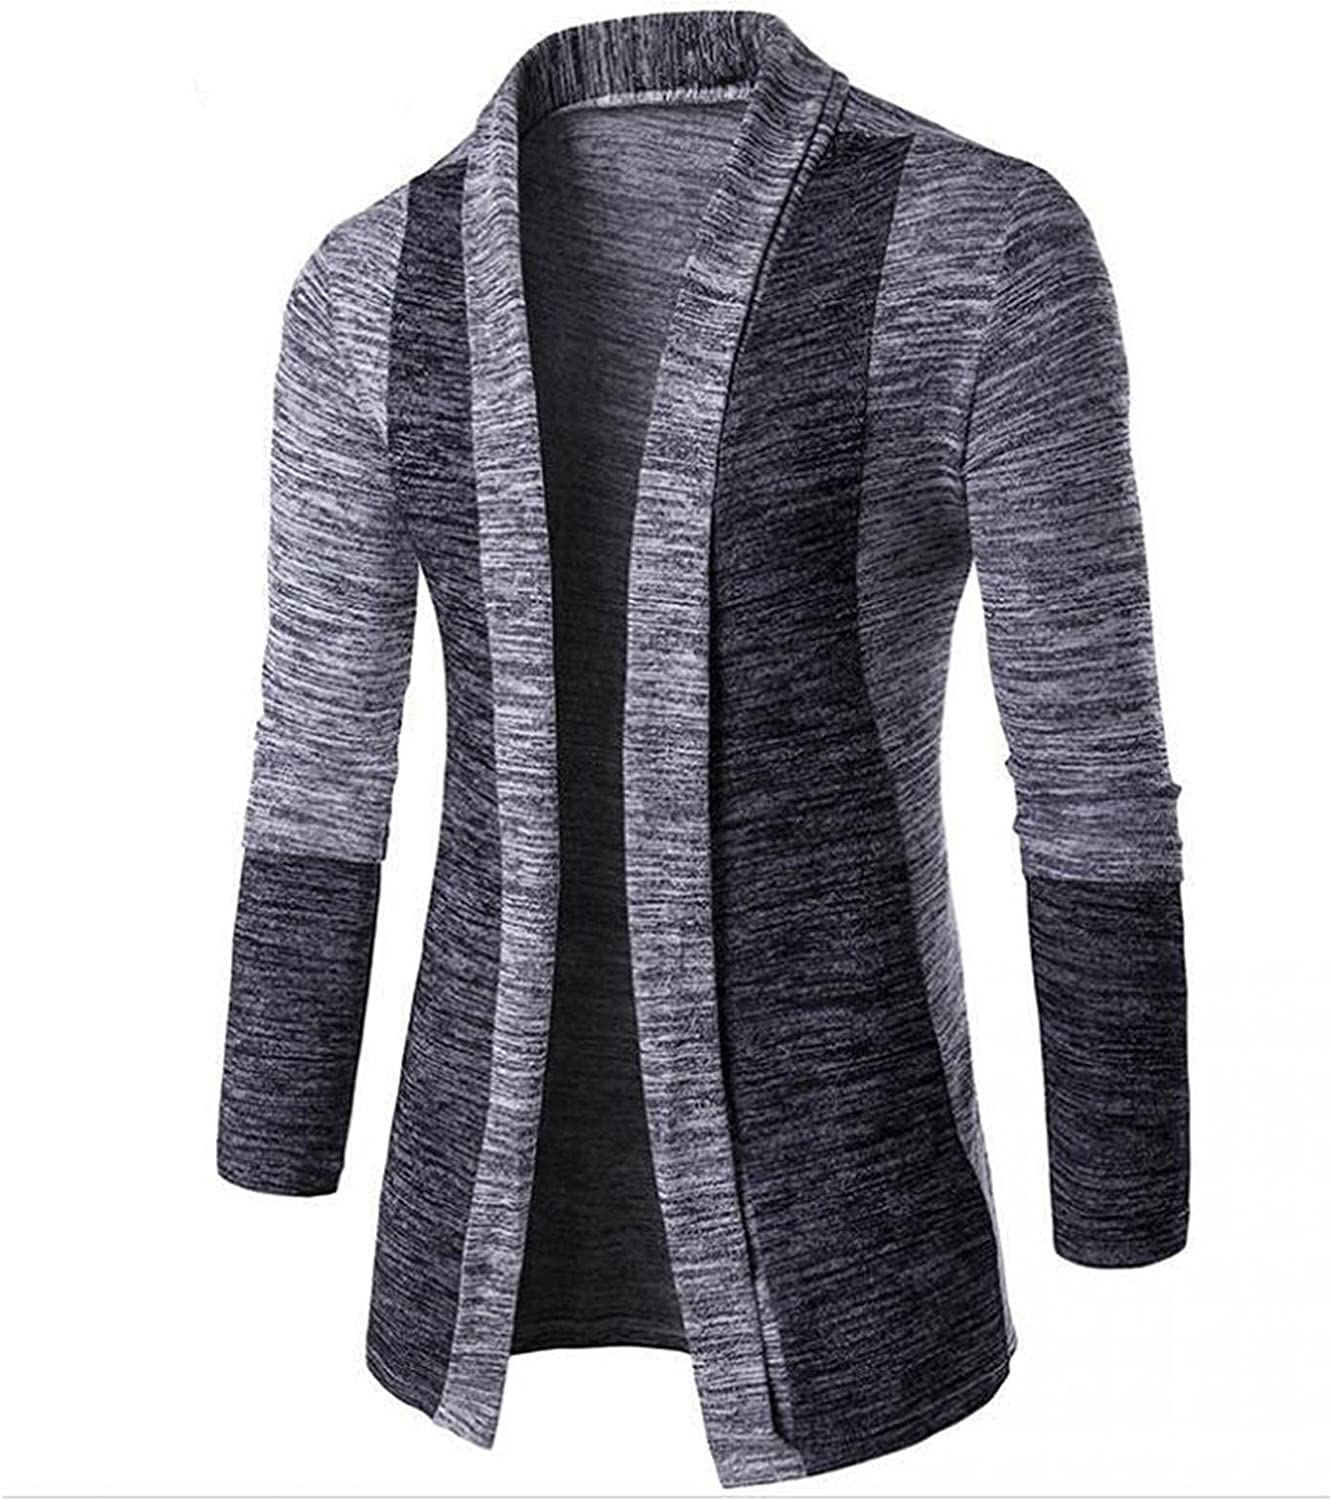 Huangse Men's Casual Shawl Neck Open Front Midi Length Knitwear Cardigan Fashion Color Block Knitted Jacket